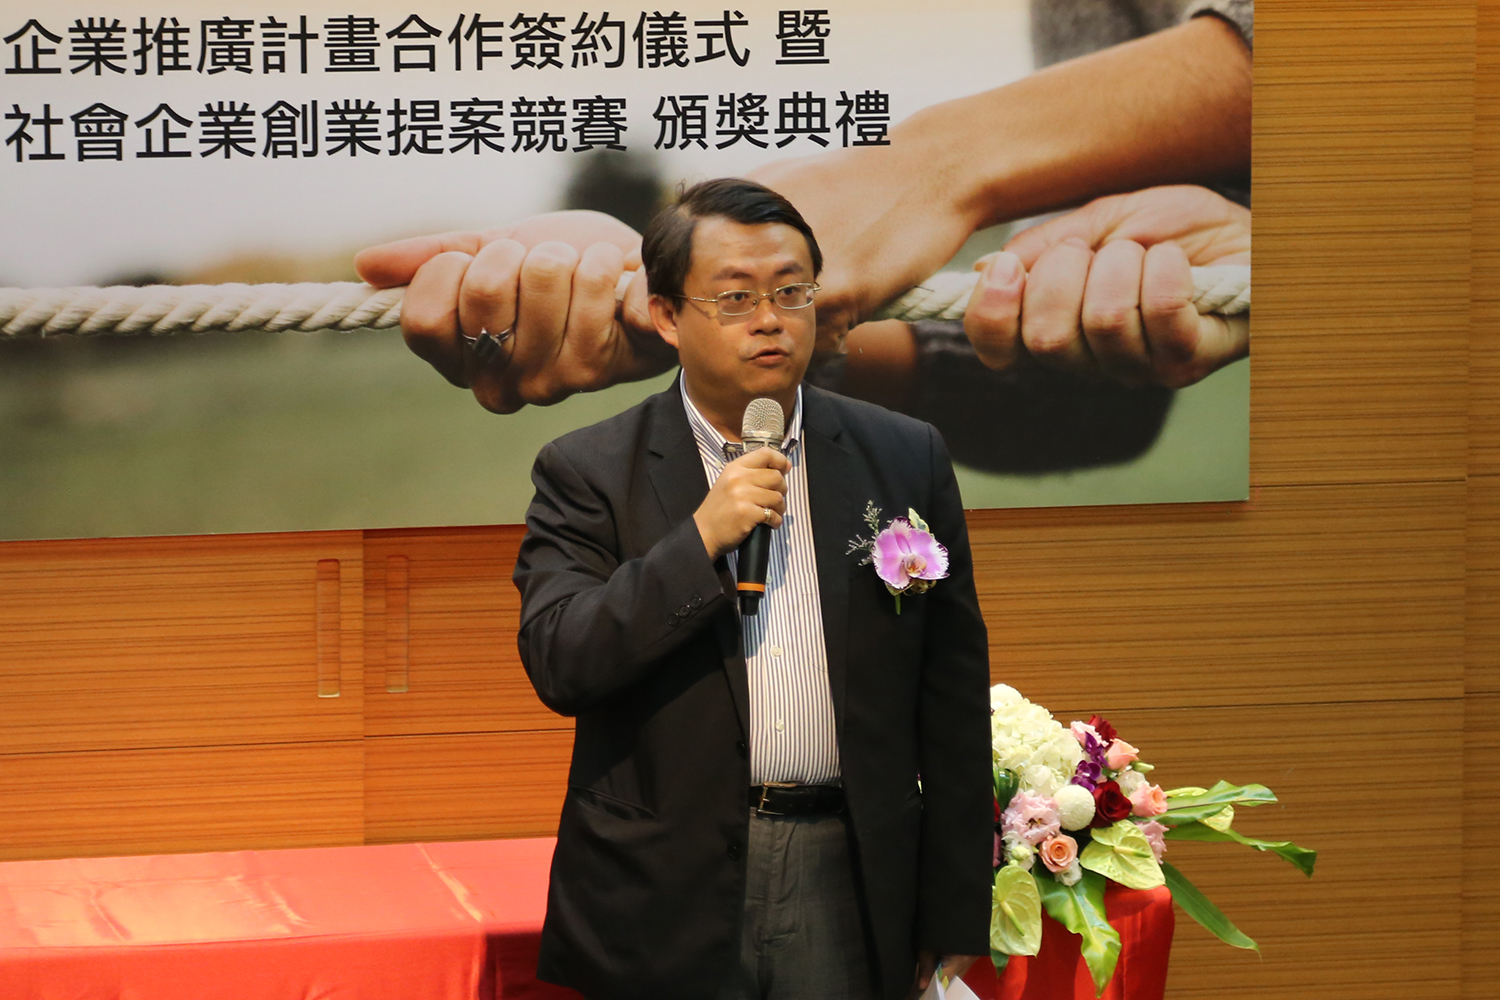 Commissioner Yao-Zhi Lu of the Economic Development Bureau of the Taichung City Government